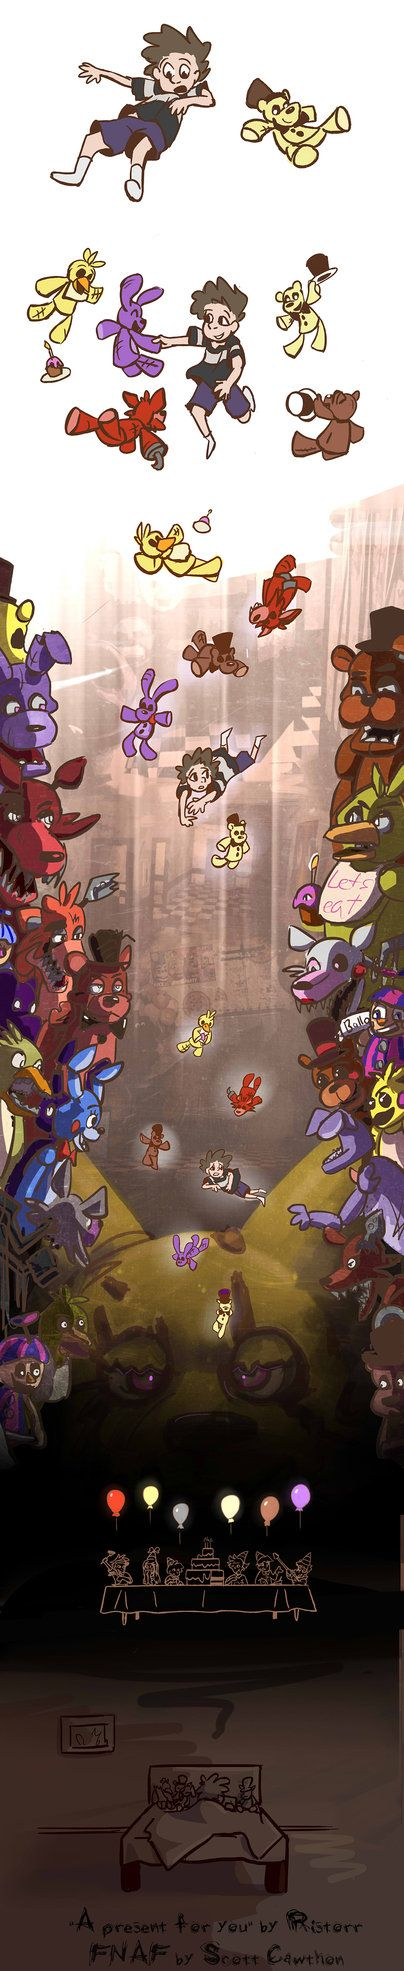 FNAF comic - A present for you [final] (updated) by Ristorr